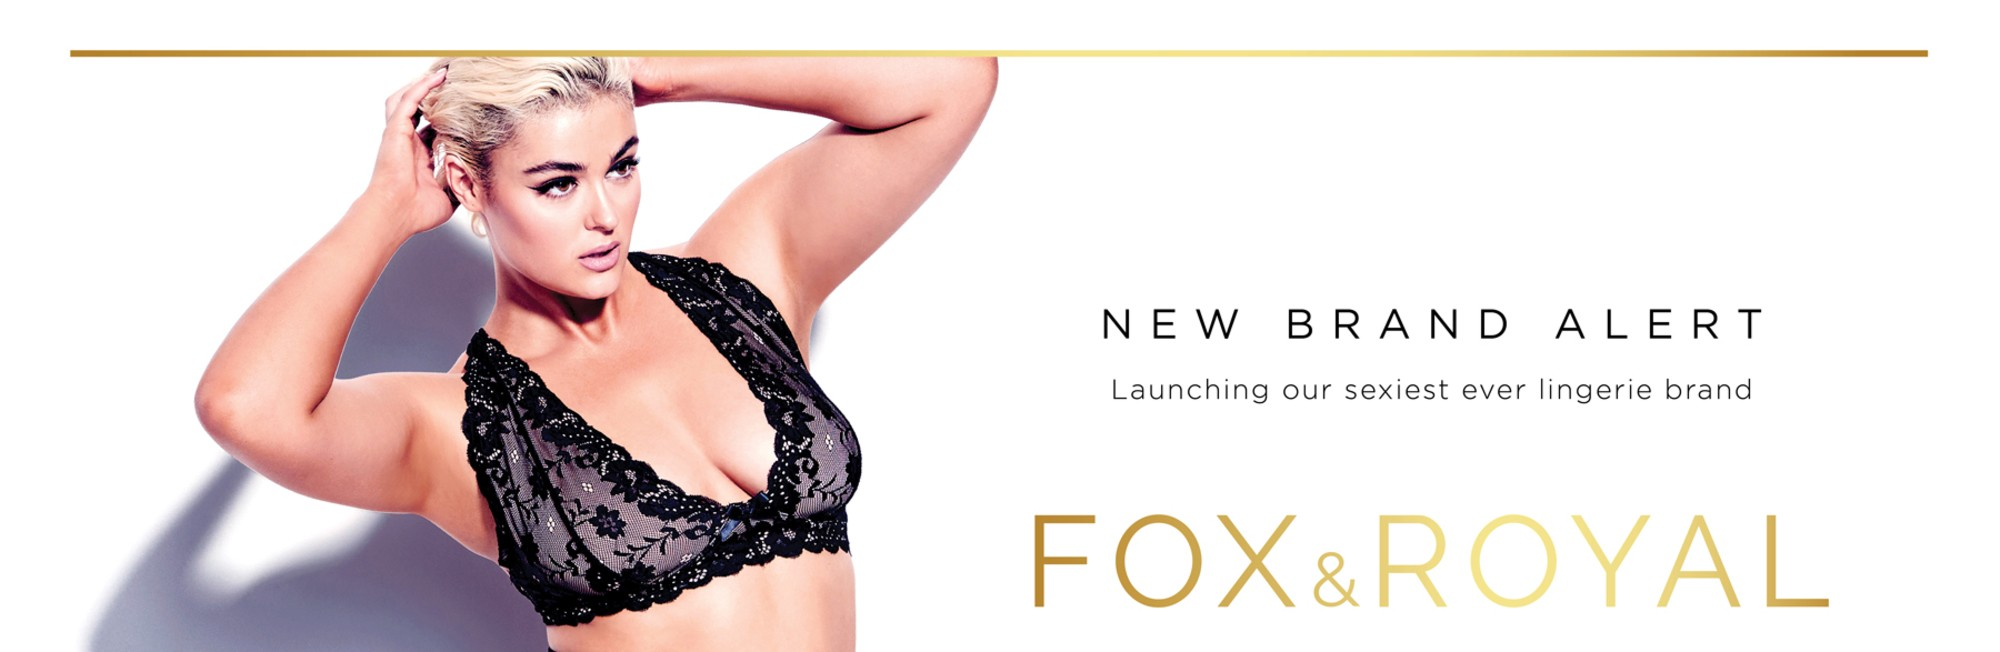 Fox & Royal Lingerie